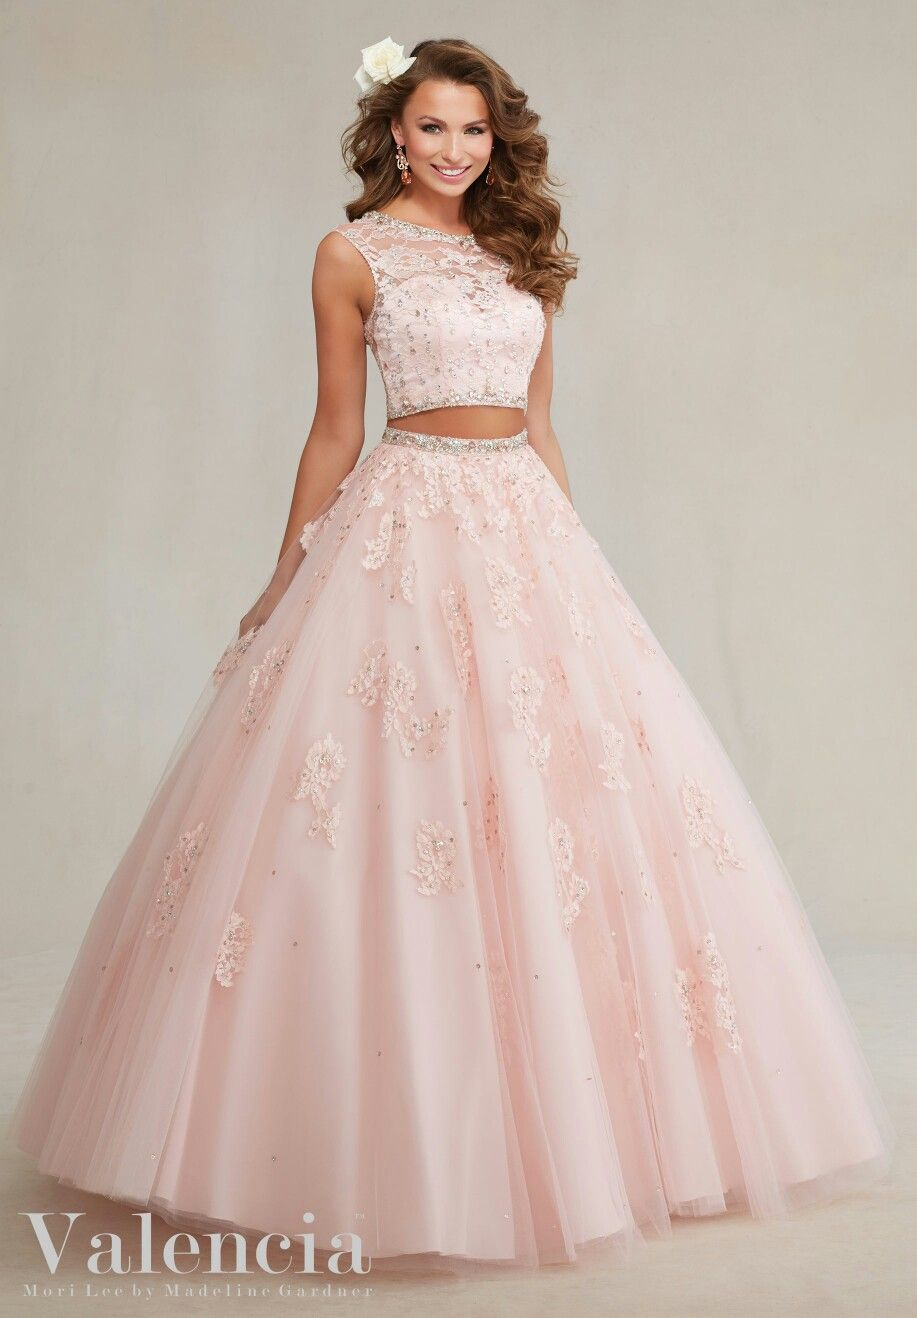 59f4120cbb60 Light Pink 2 piece Dress $500-$600 | quinceanera dresses in 2019 ...